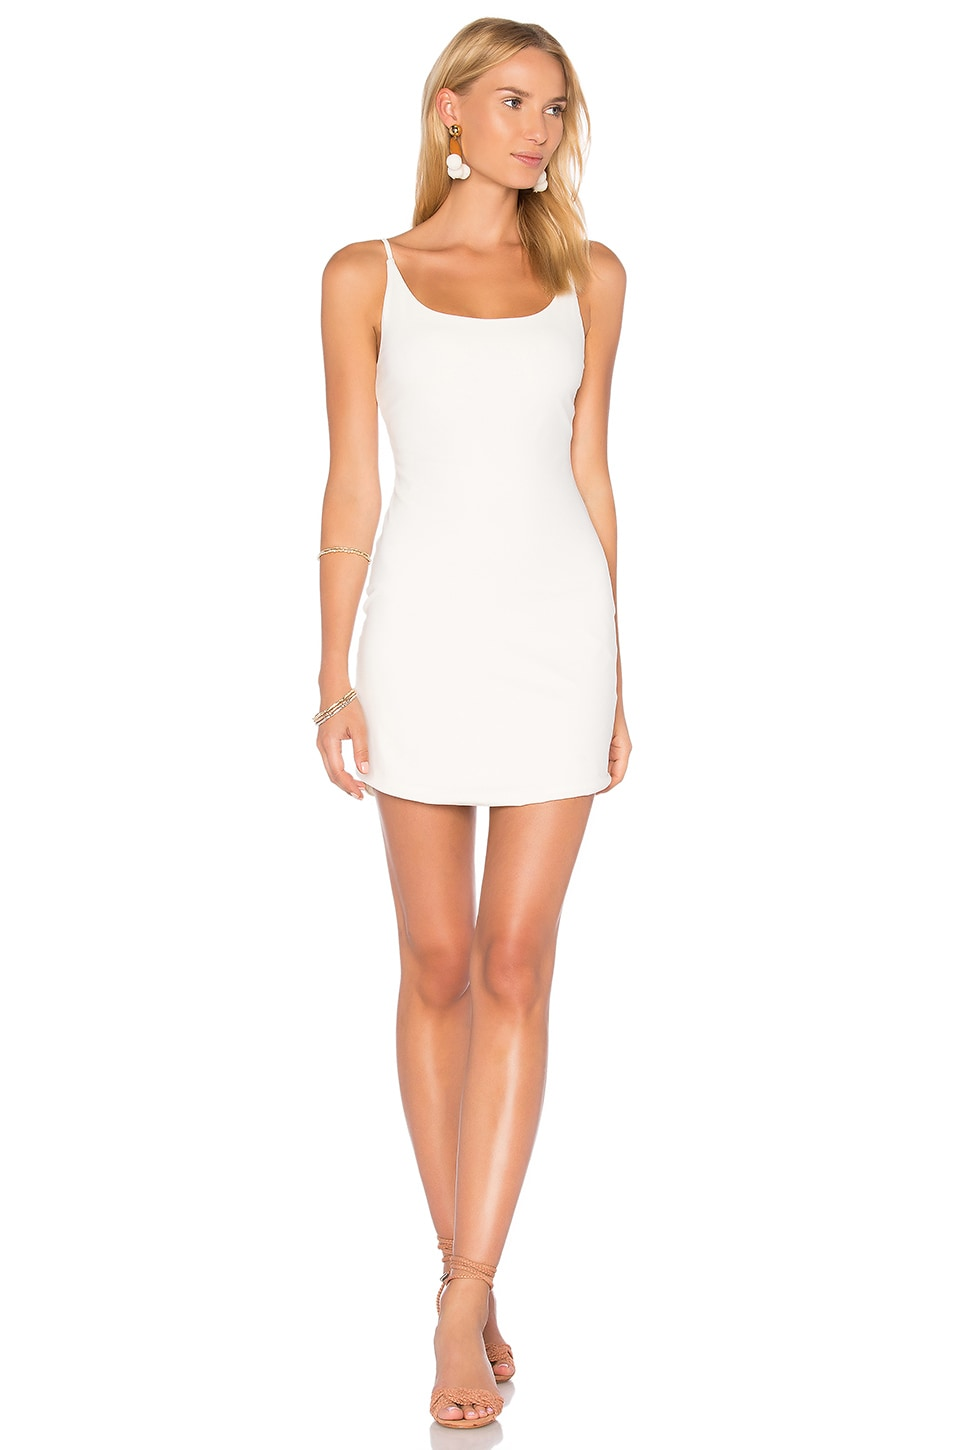 Privacy Please Cassiar Dress in Ivory